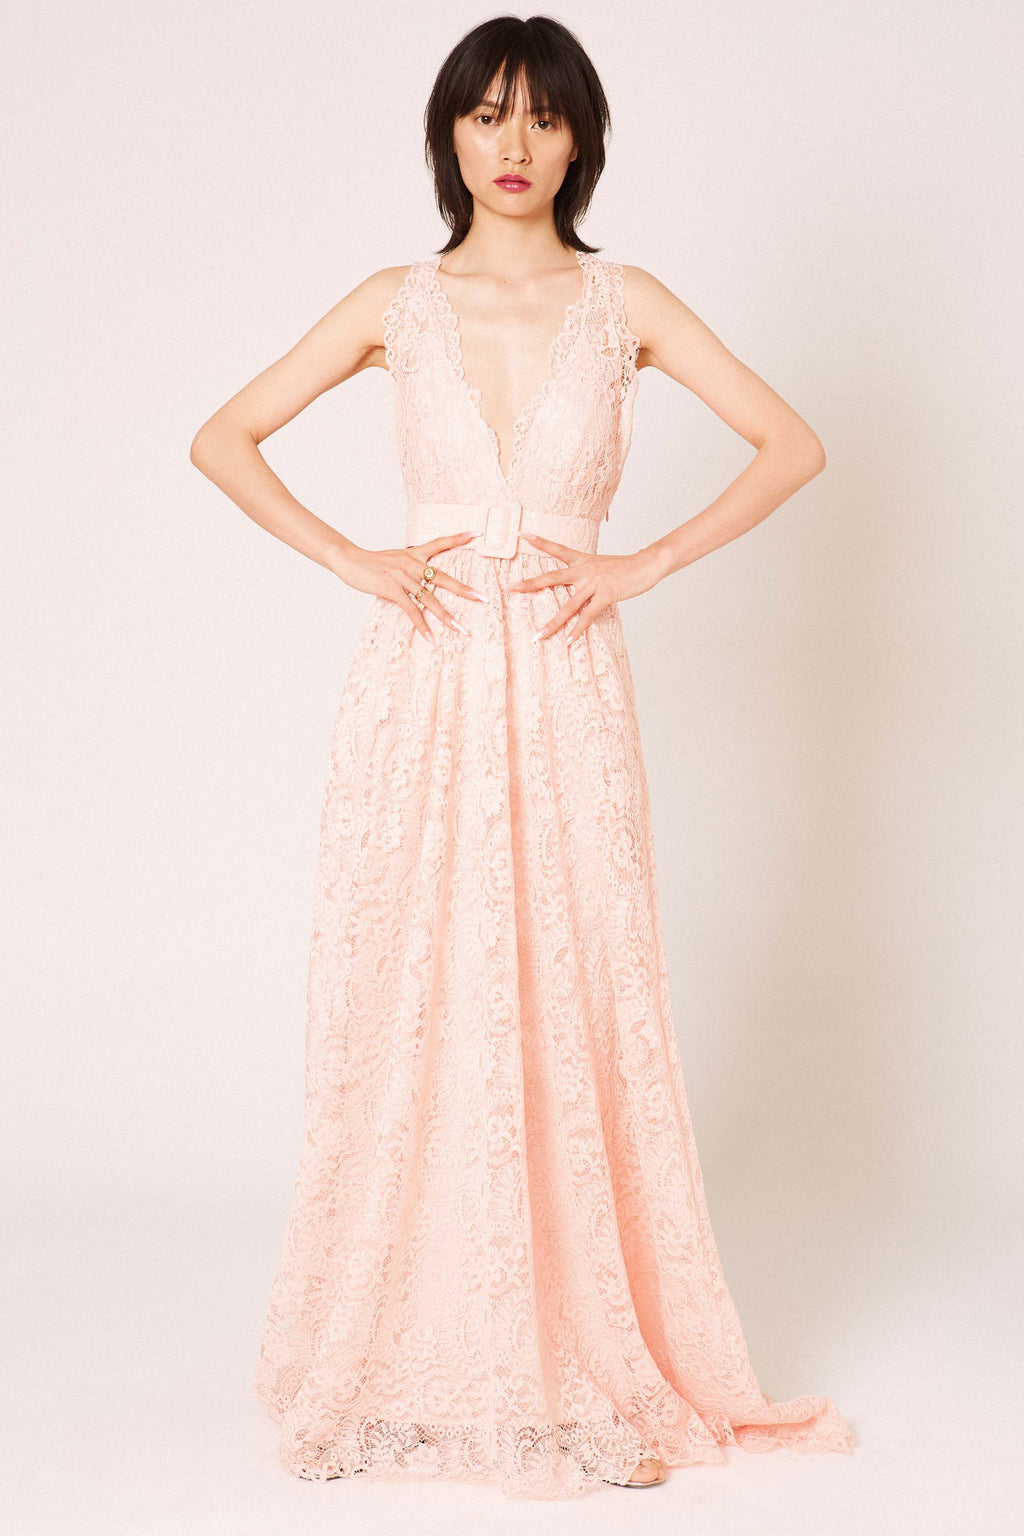 Amour Nude Dress - Etxart & Panno USA